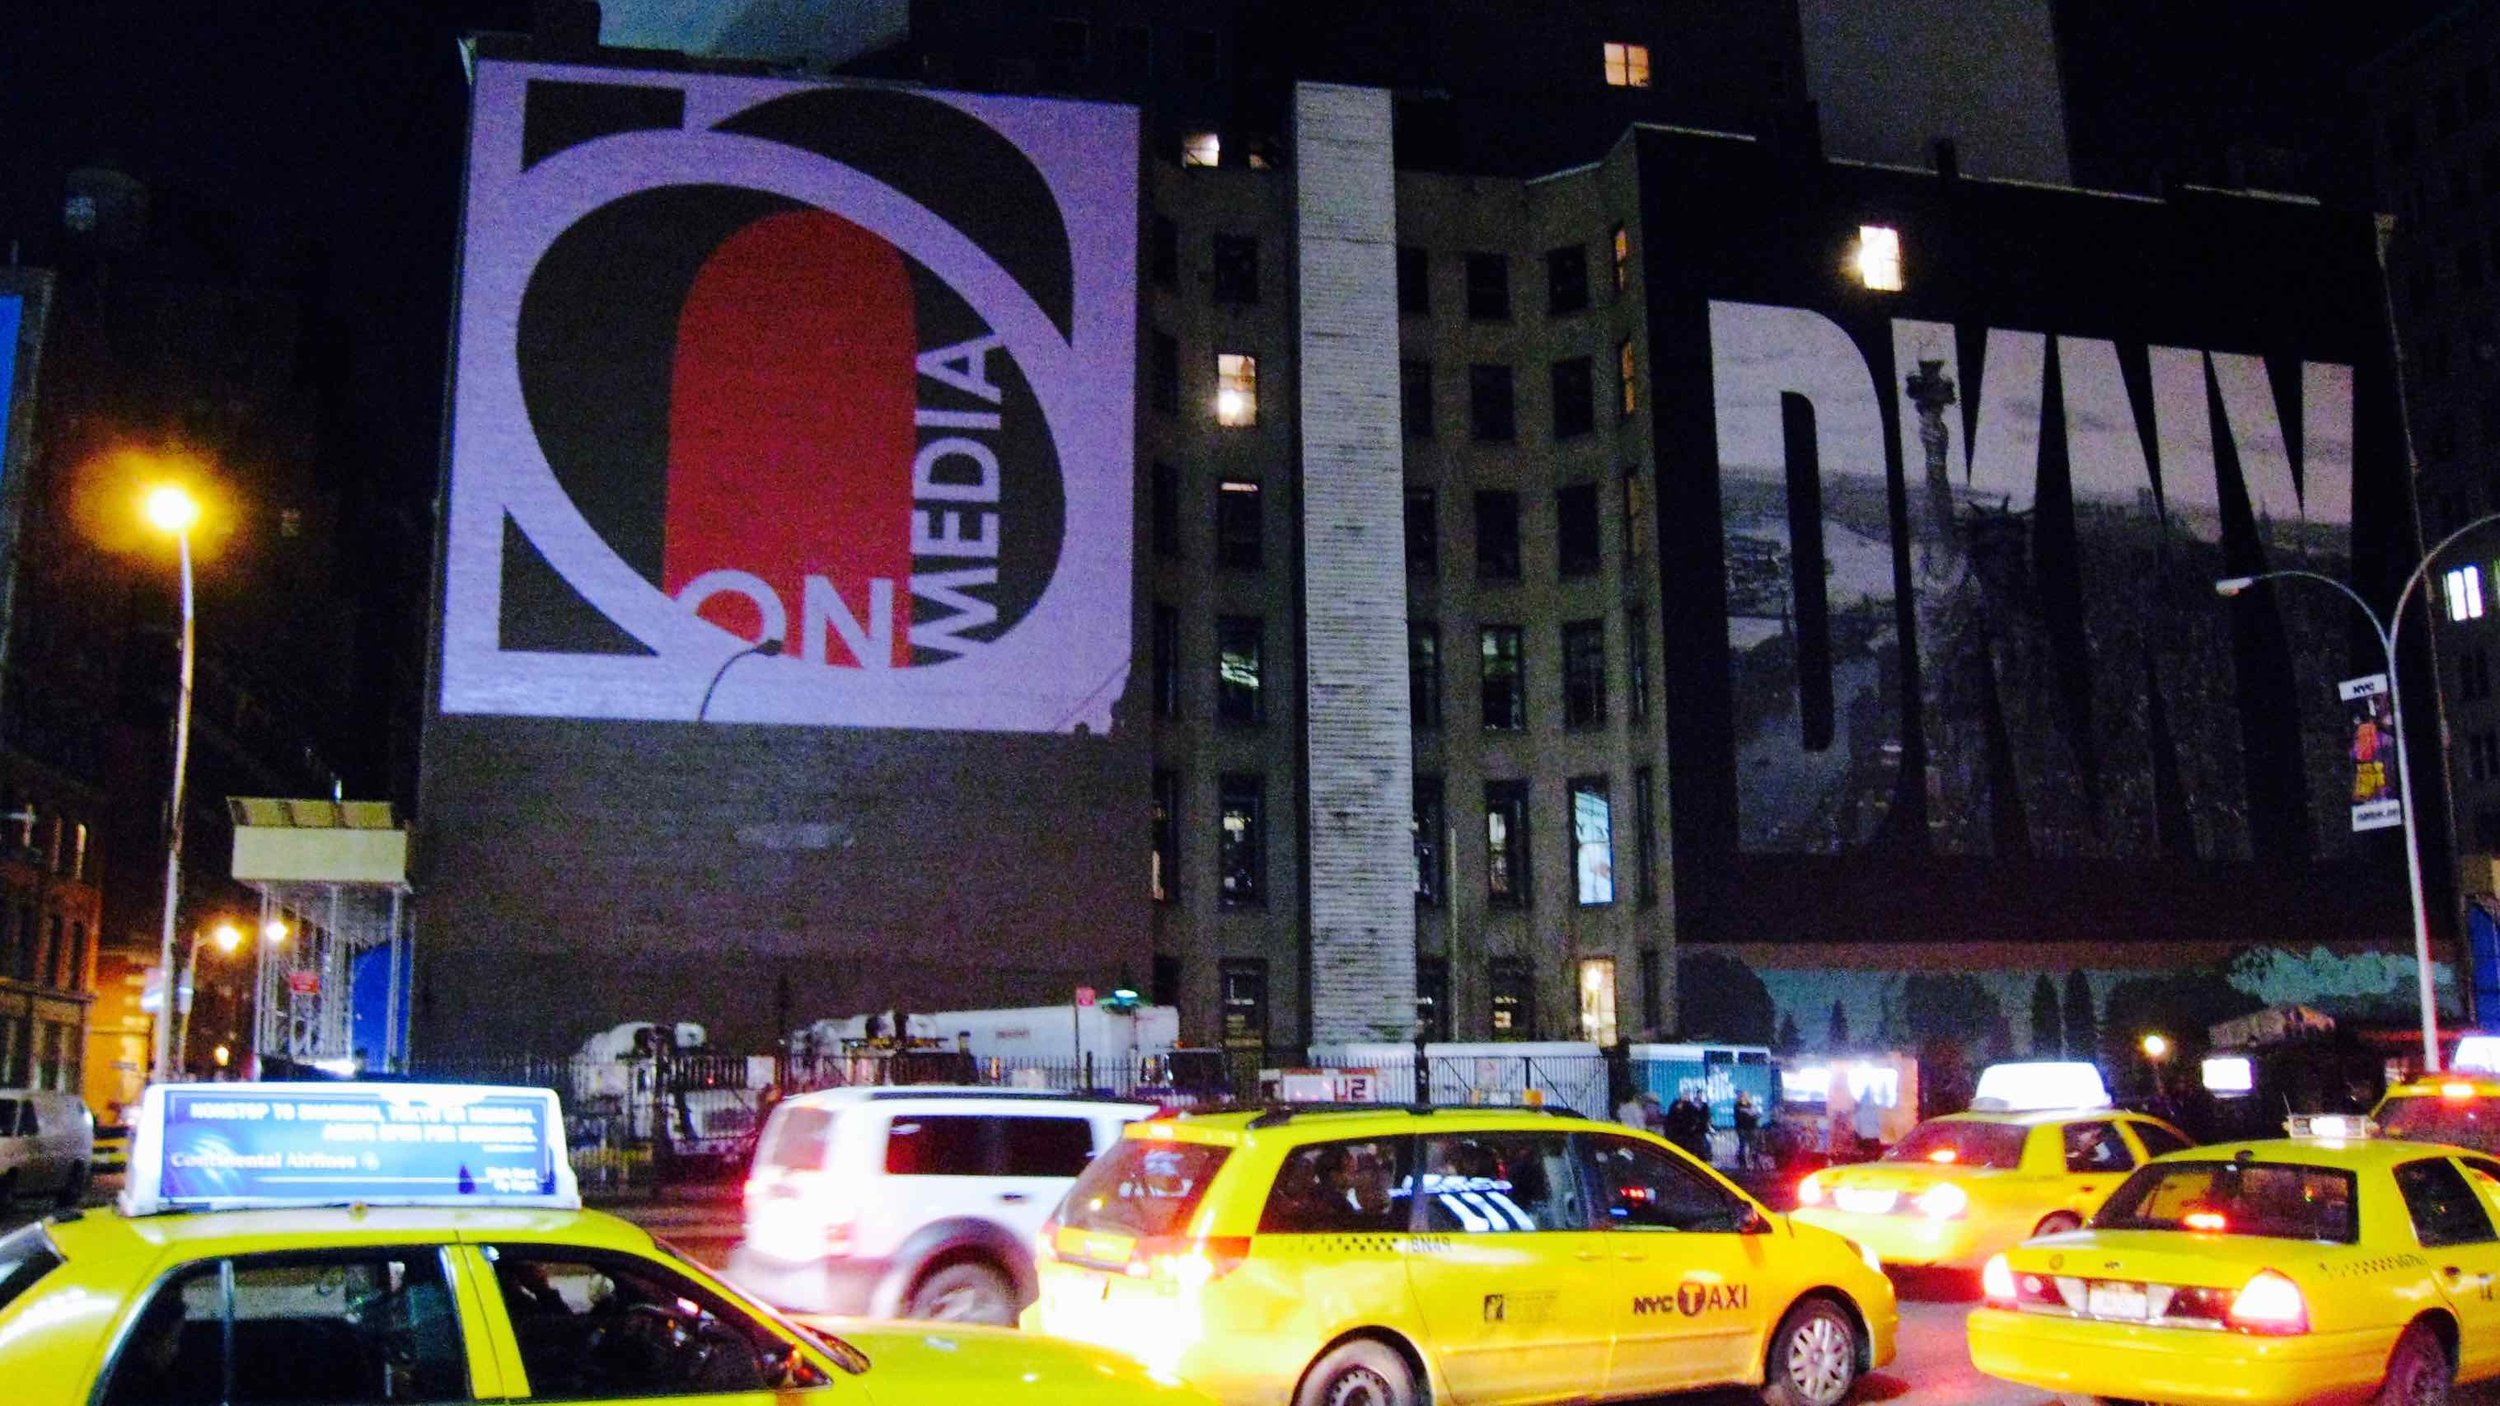 OMG | OnMedia |Guerilla Marketing | 2D Projection Media | OMG Logo | New York | NYC.jpg